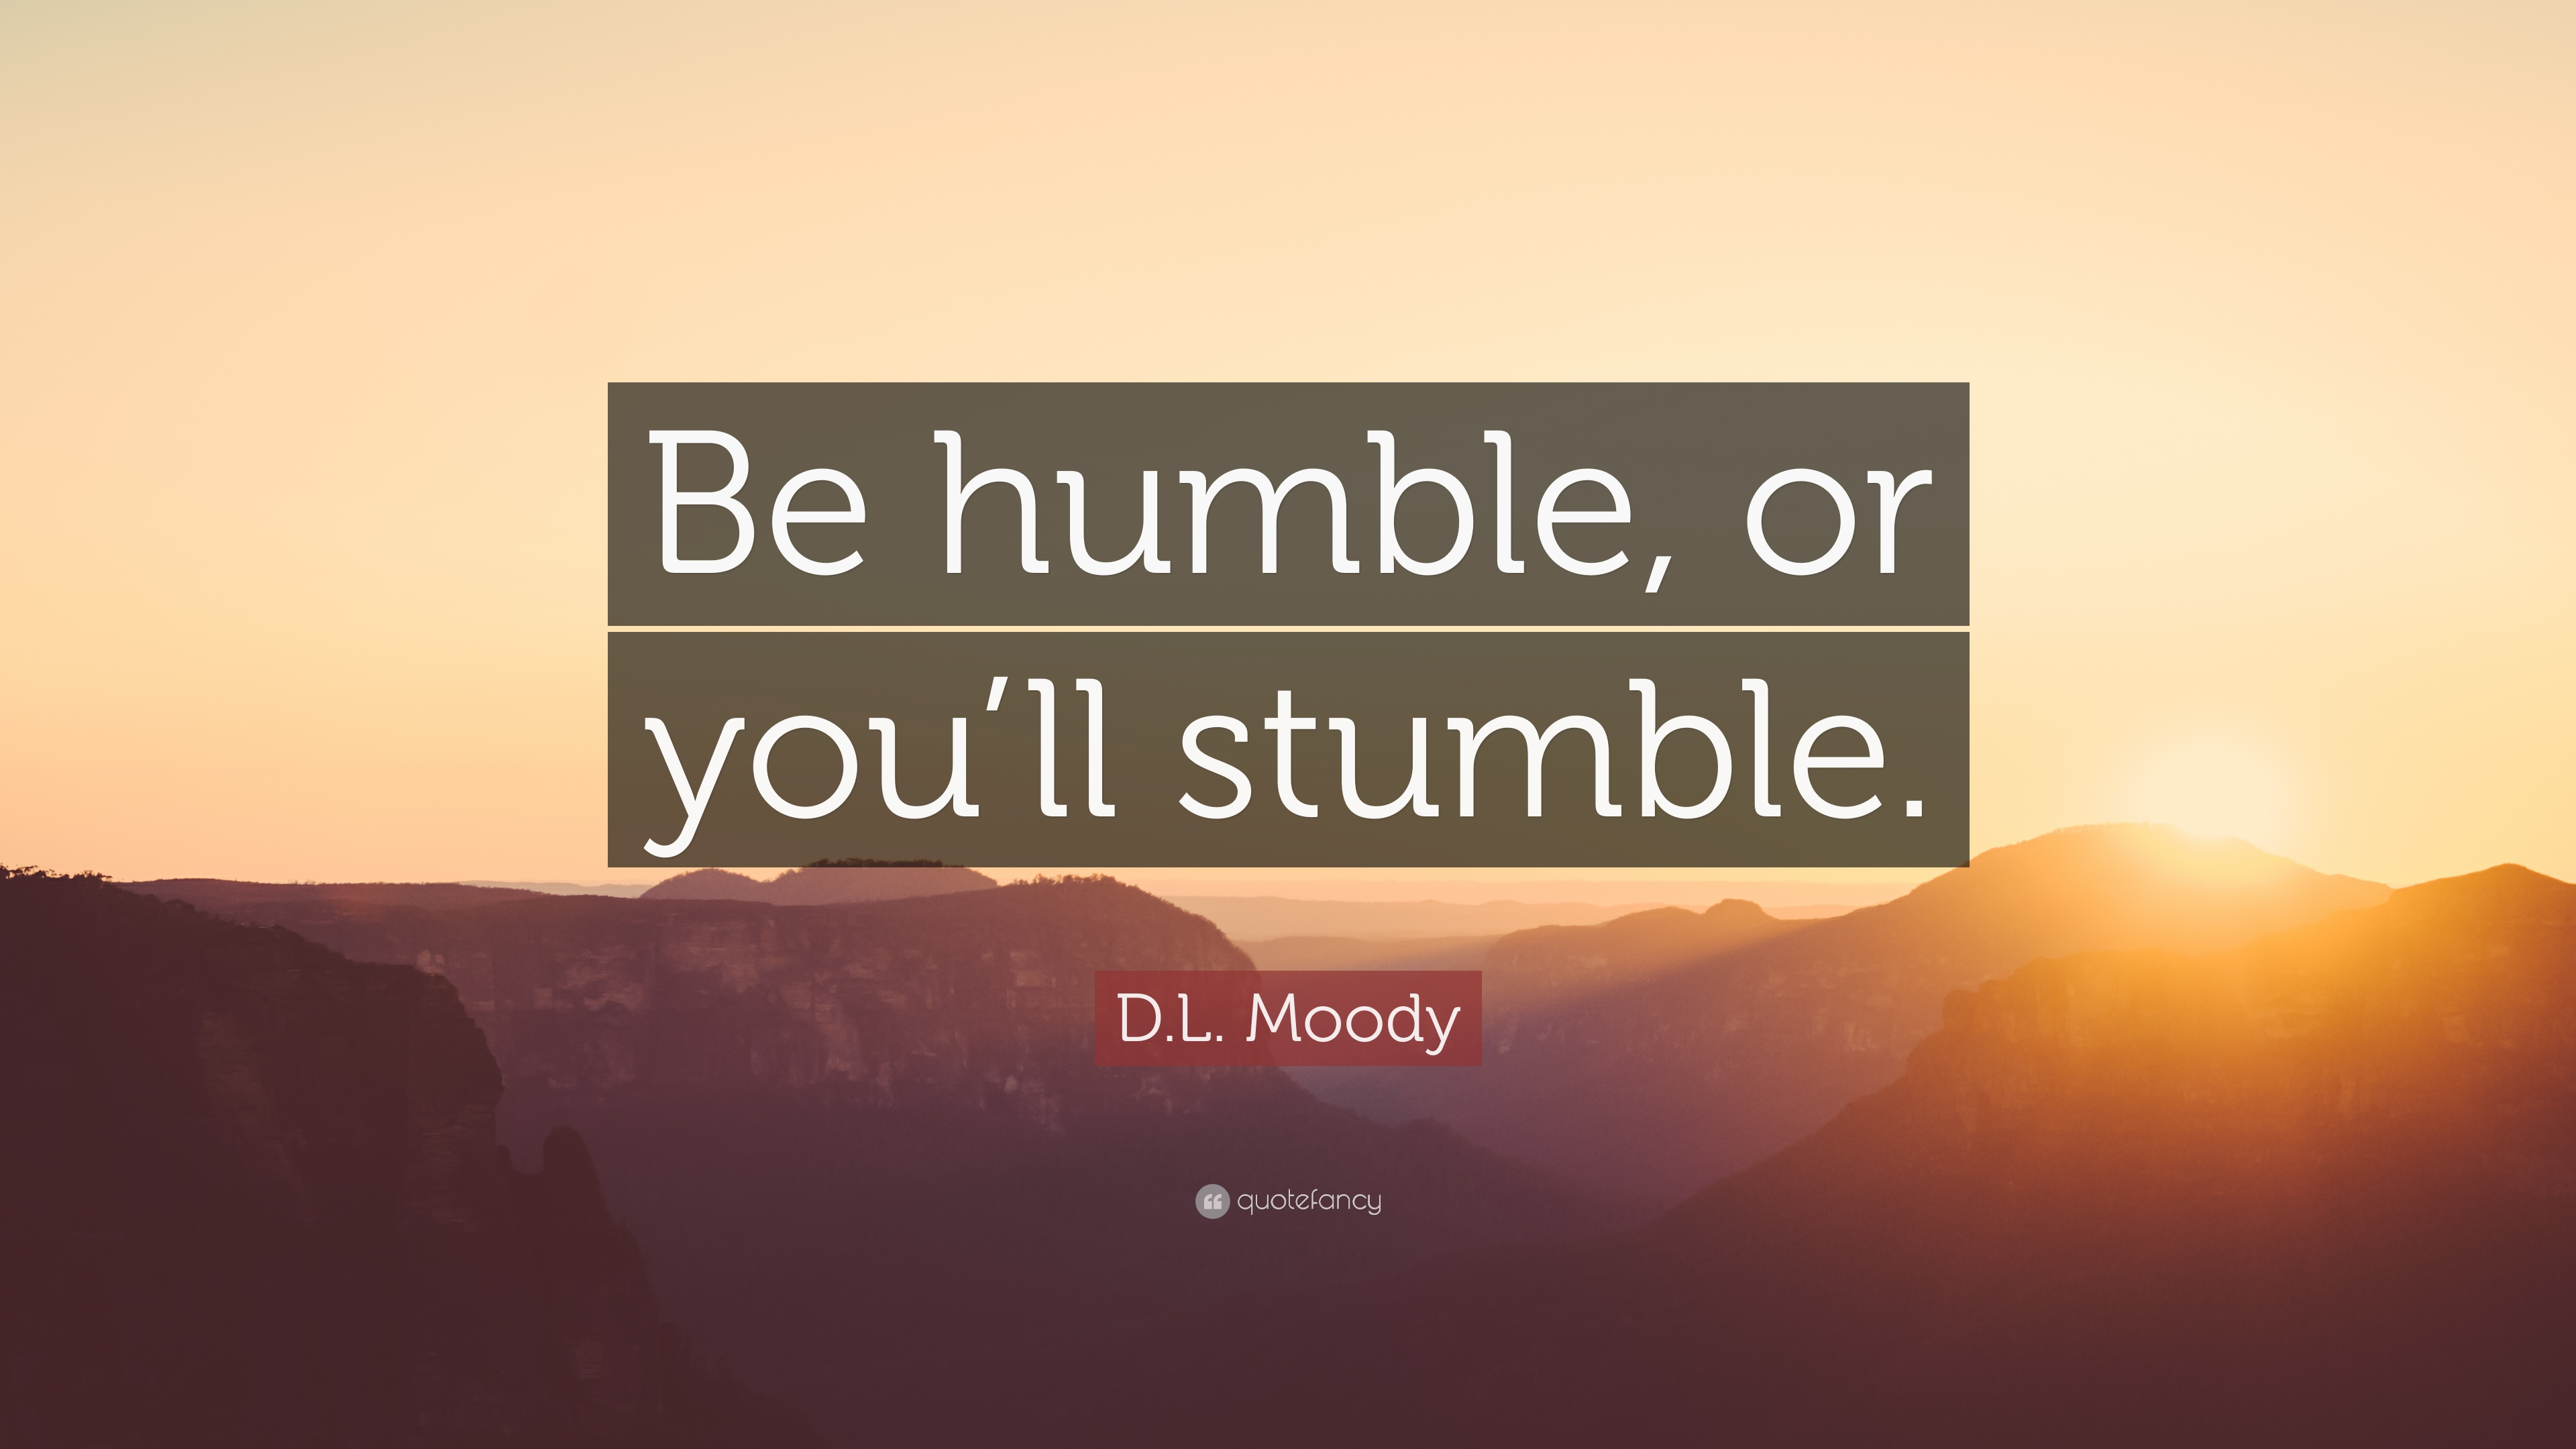 Quotes About Being Humble | Humble Quotes 40 Wallpapers Quotefancy